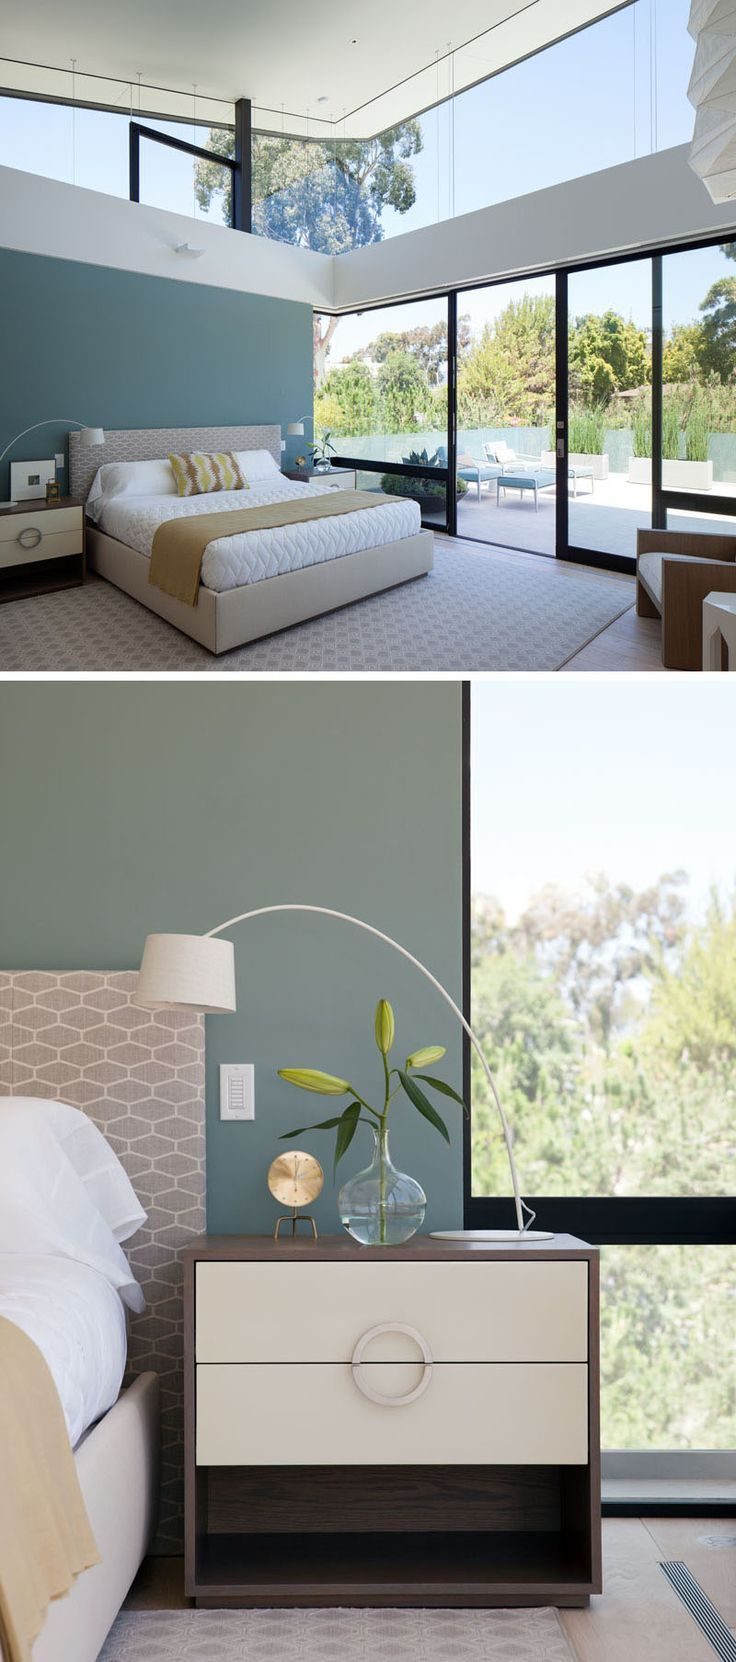 2015 08 decorating with plum and damson - In This Modern Bedroom A Deep Teal Blue Accent Wall Has Been Added For A Touch Of Color And Sliding Glass Doors Open To A Private Patio With Views Of The